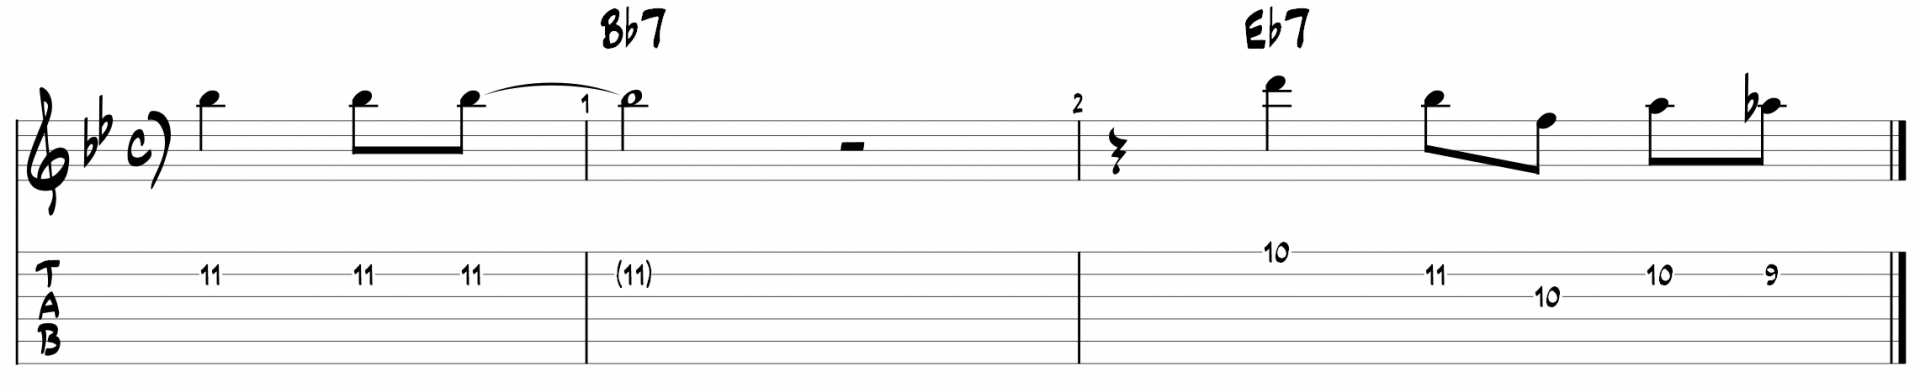 Miles davis blues guitar lick